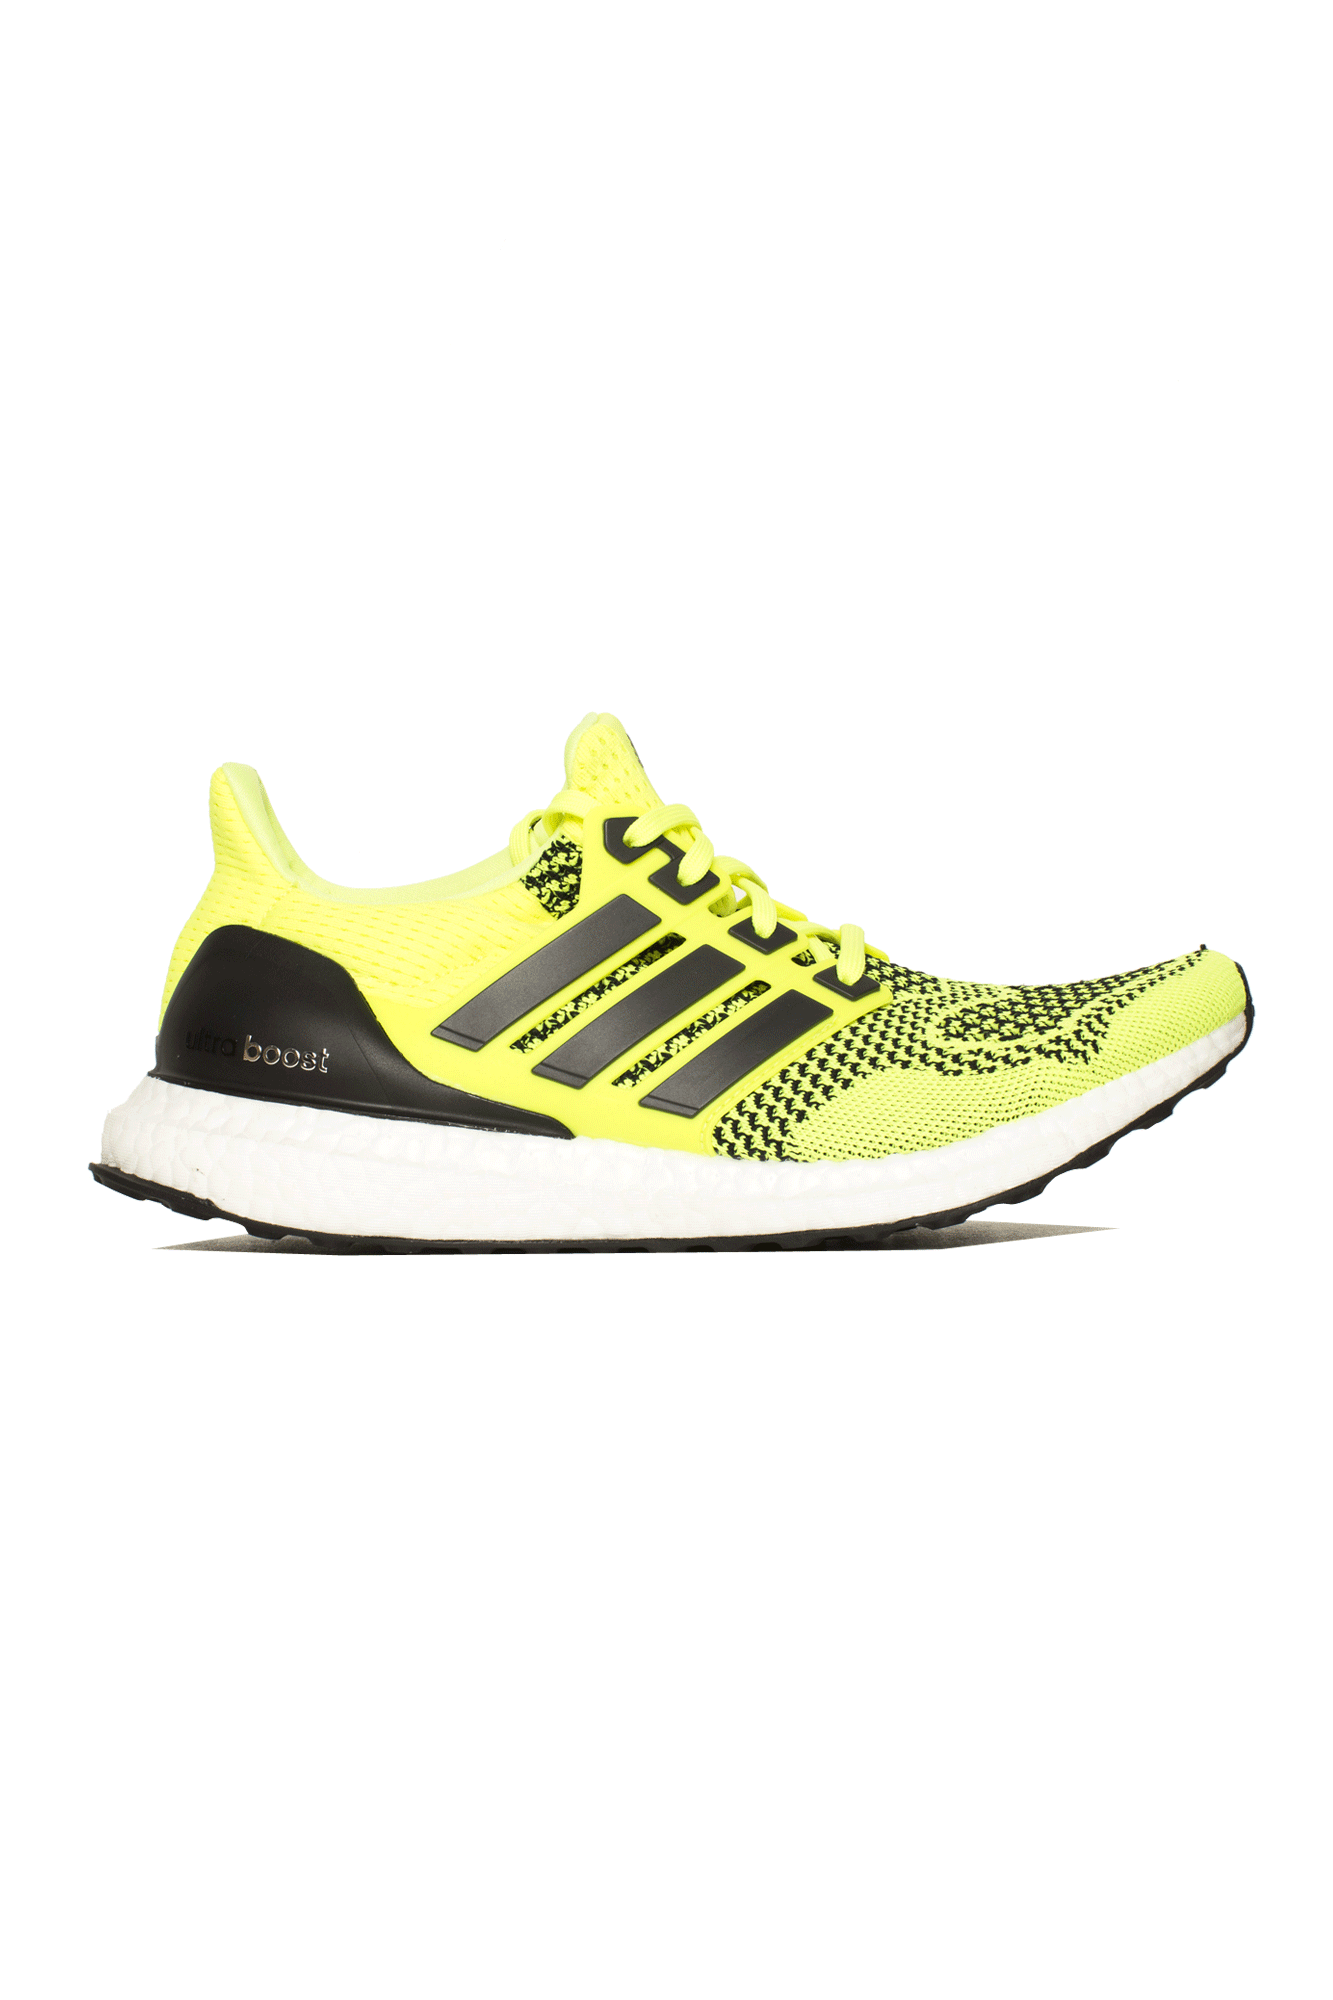 Ultraboost 1.0 Yellow